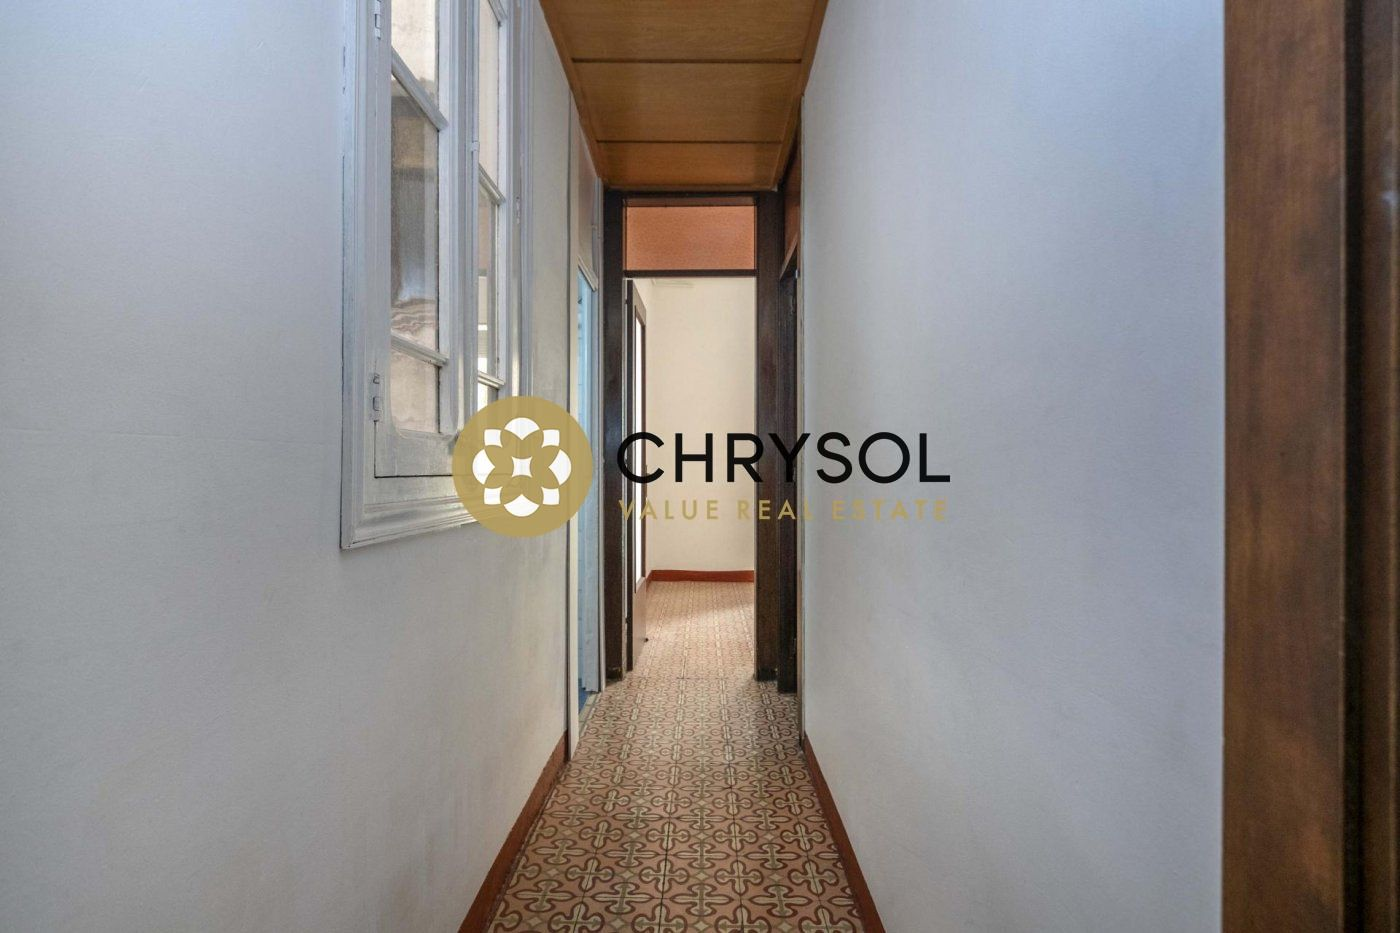 Photogallery - 19 - Chrysol Value